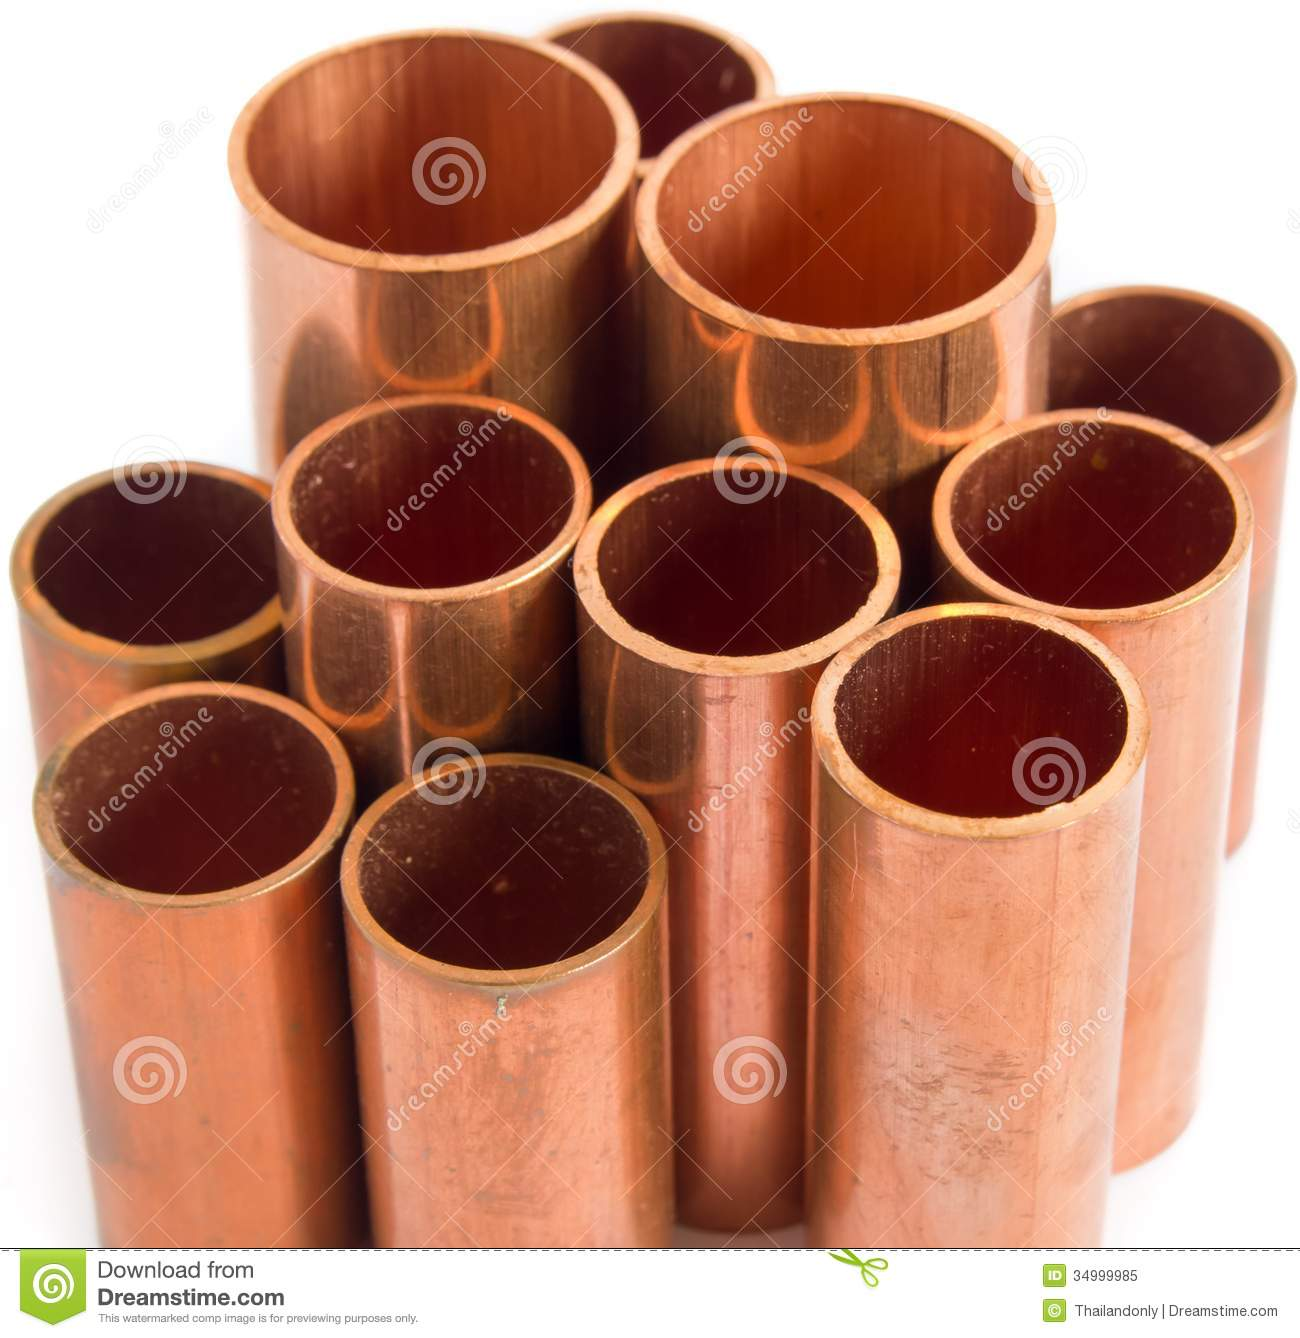 Copper pipe royalty free stock photo image 34999985 for Used copper pipe